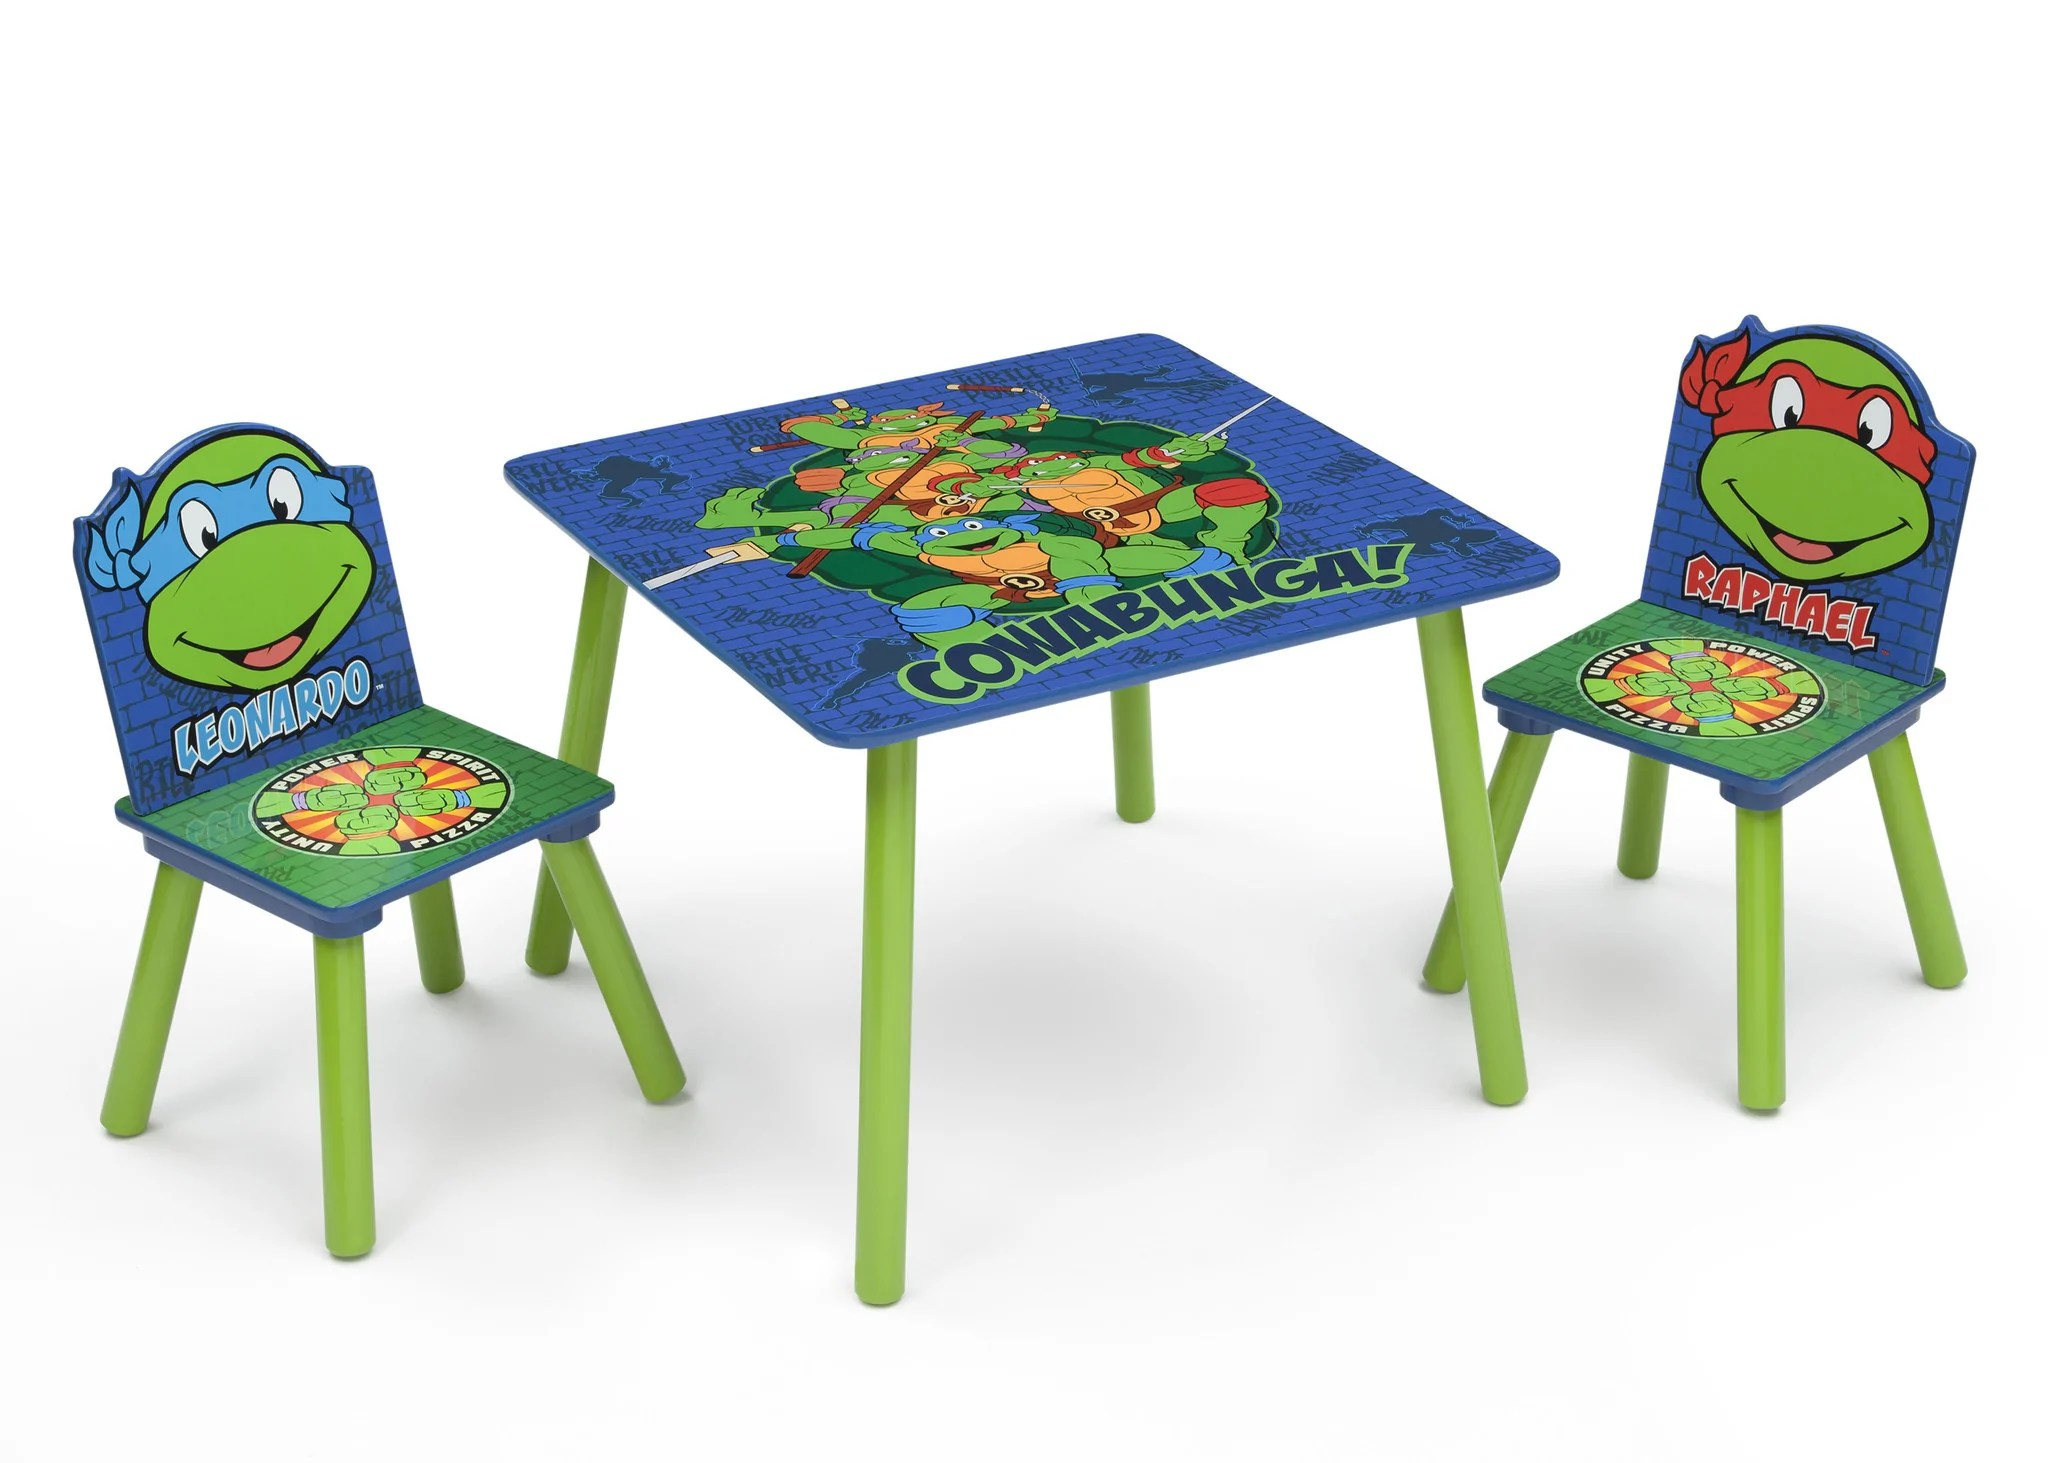 ninja turtles chair folding daraz teenage finest cool chairs for boys